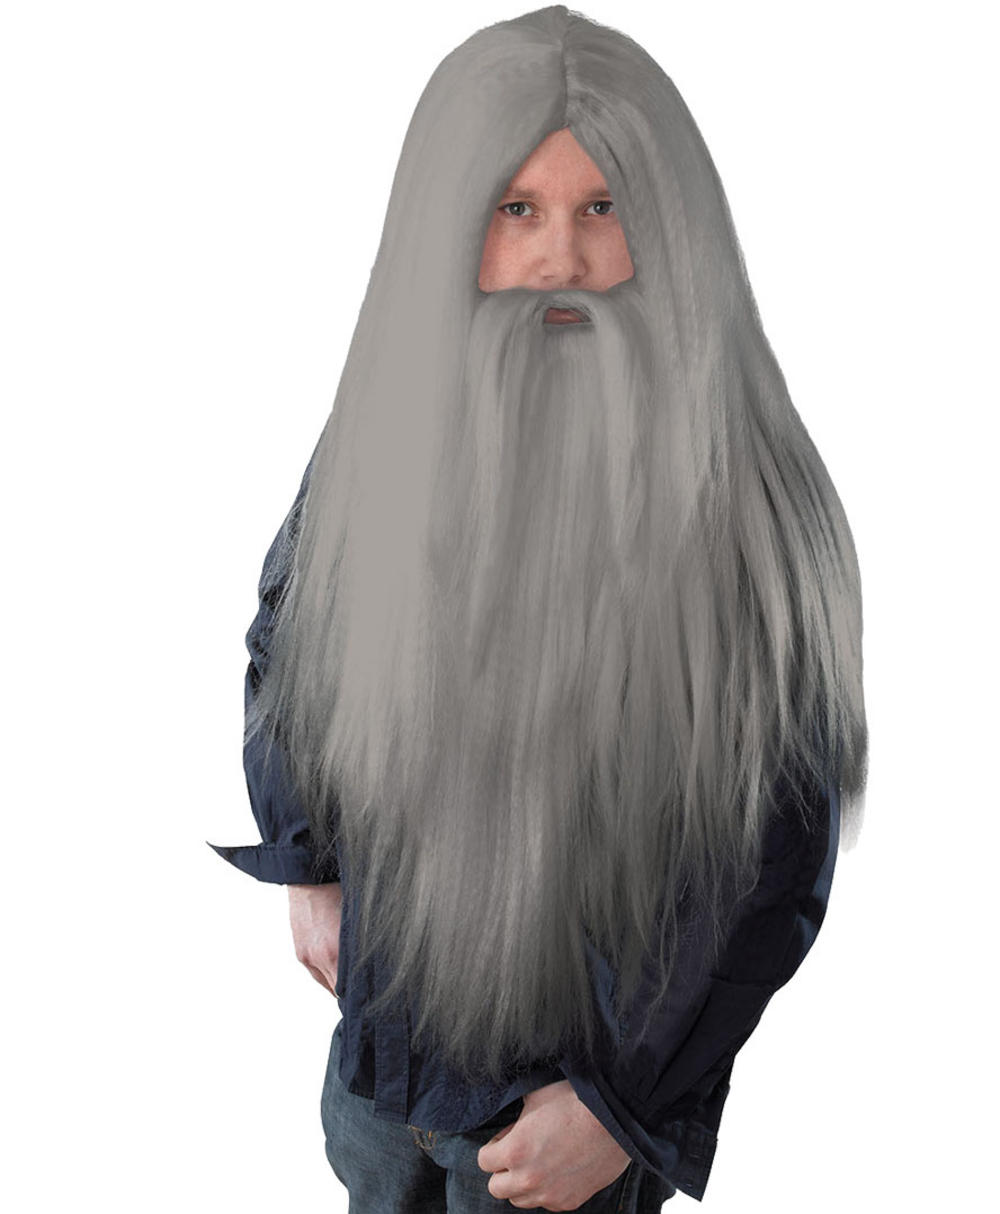 Wizard Wig And Beard 10